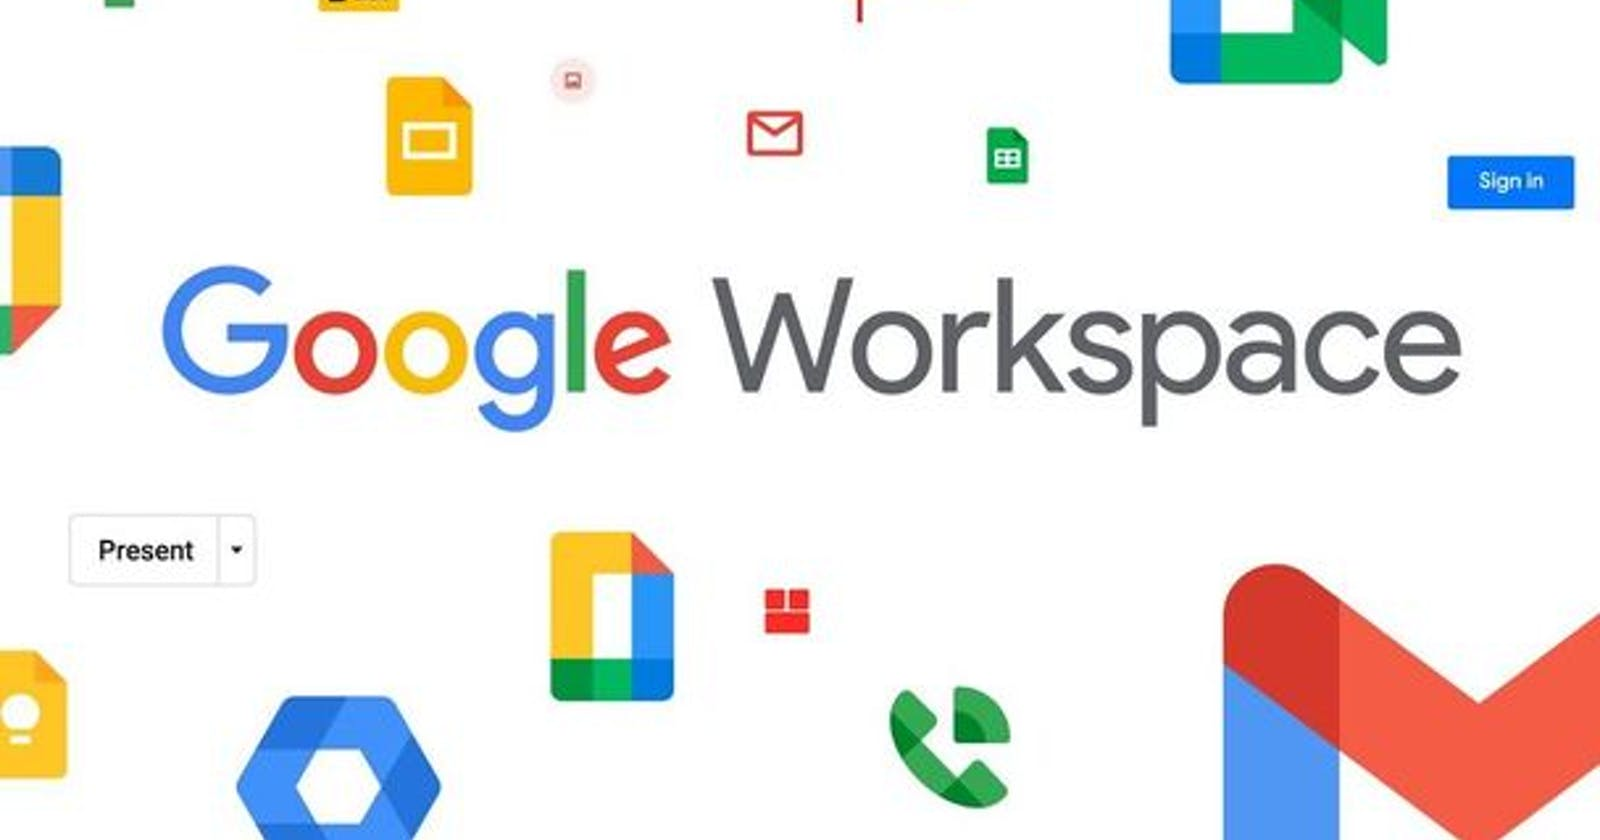 Google Workspace (formerly G Suite) is now available for every Google account holder